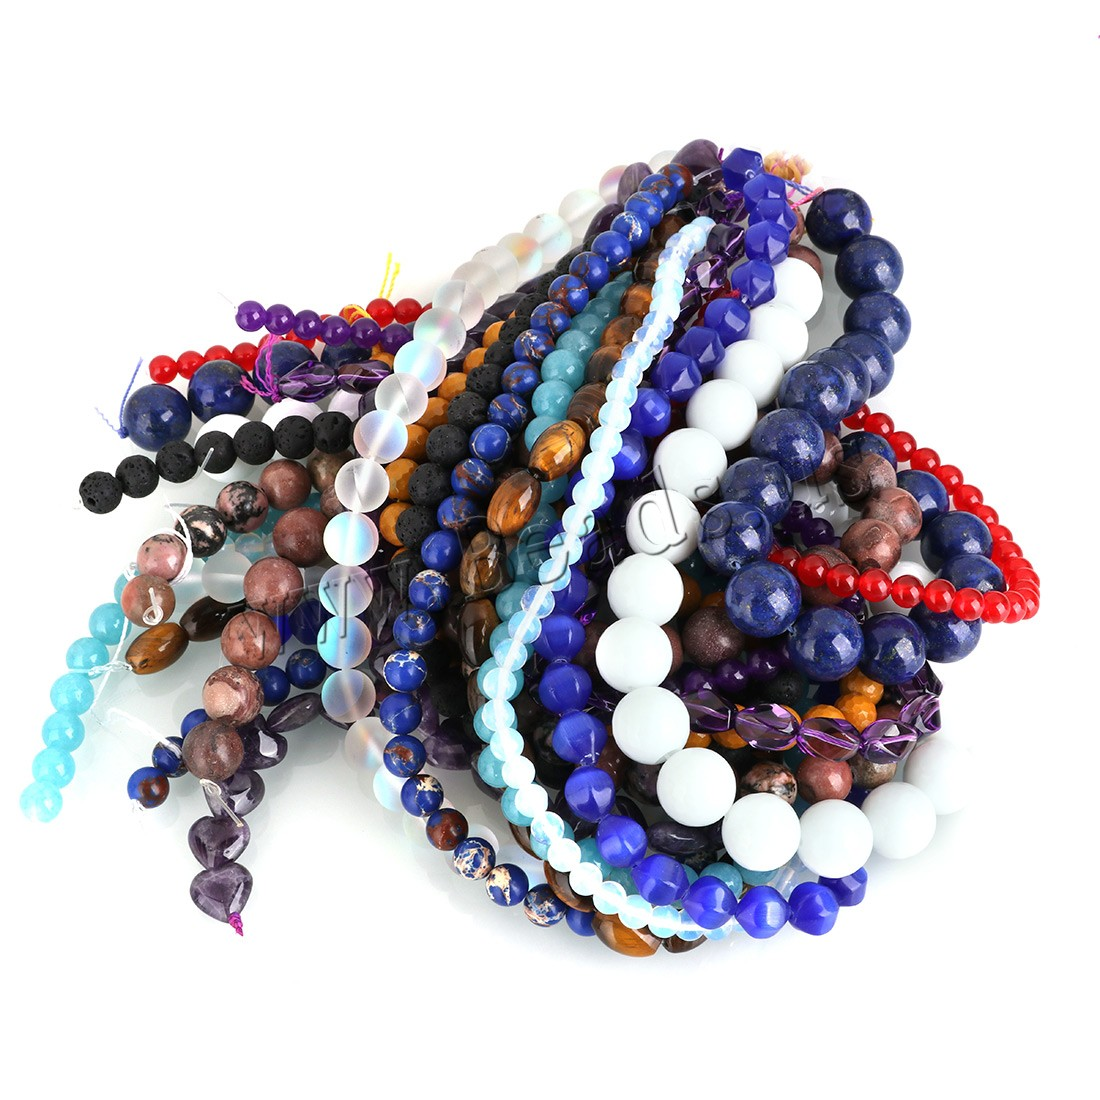 Buy Mixed Gemstone Beads natural 6-15mm Hole:Approx 0.6mm Approx 30-70PCs/Strand Sold Per Approx 15 Inch Strand